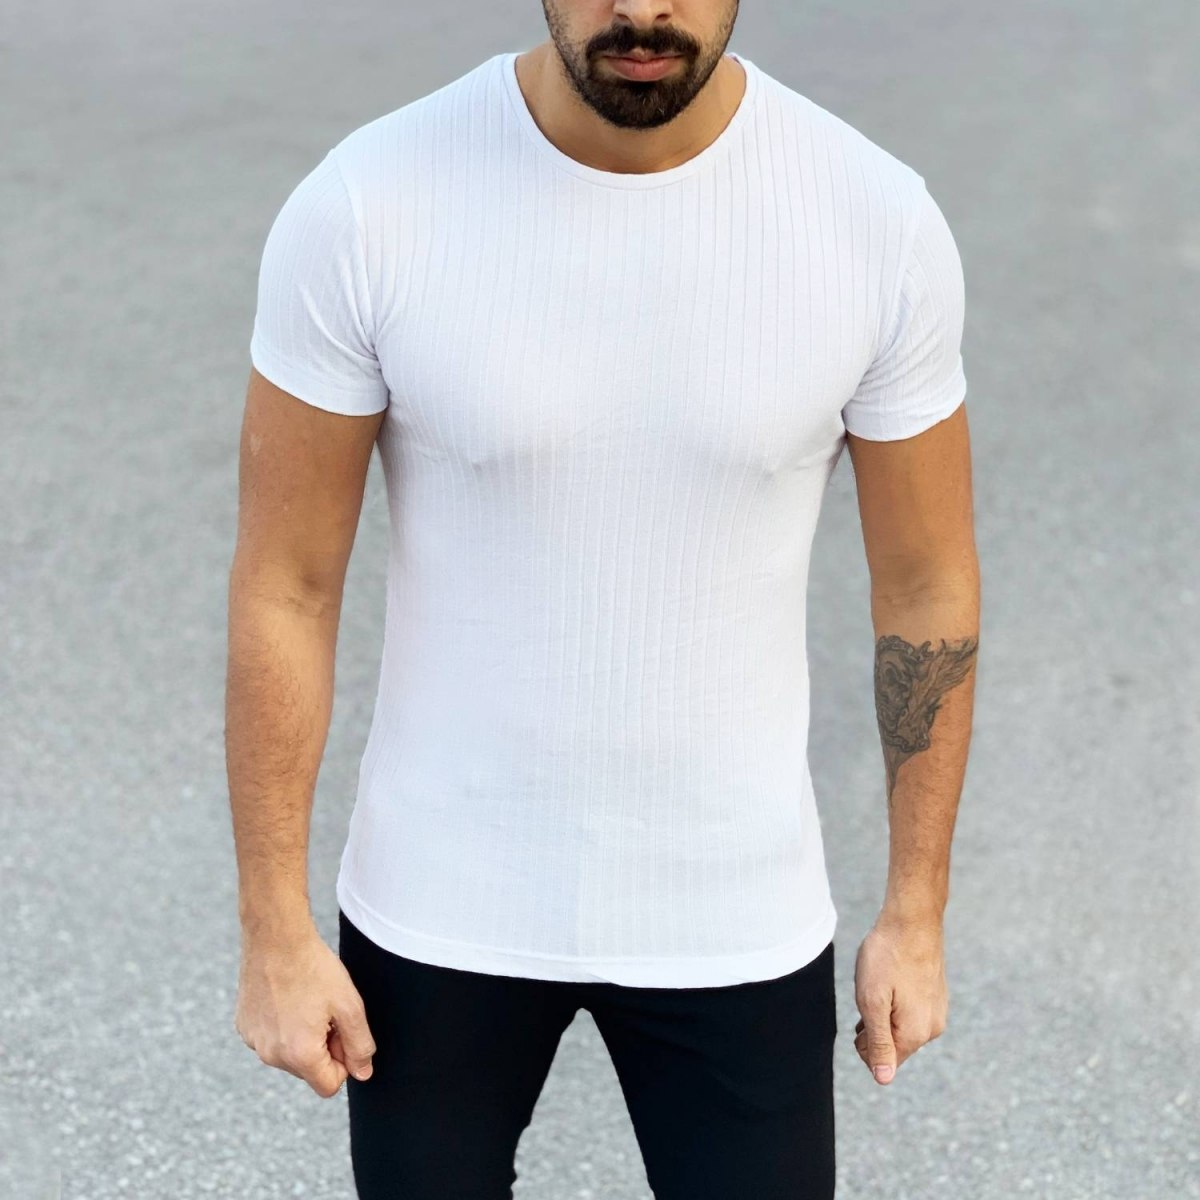 Men's Fit Cut Basic T-Shirt...